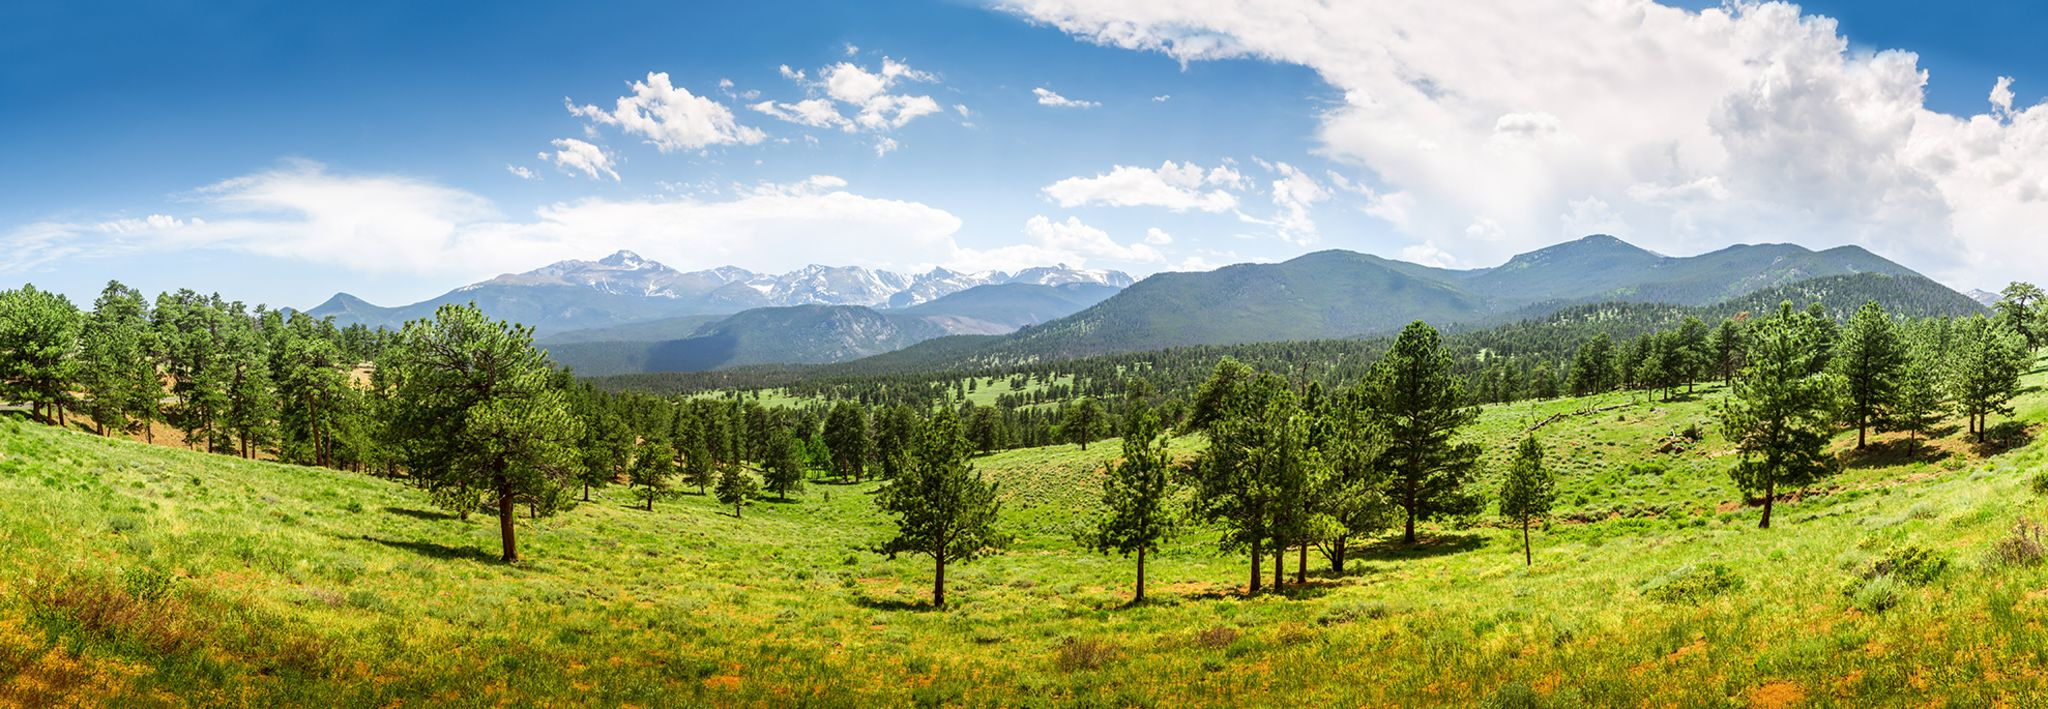 View of the mountains from Rocky Mountain National Park.